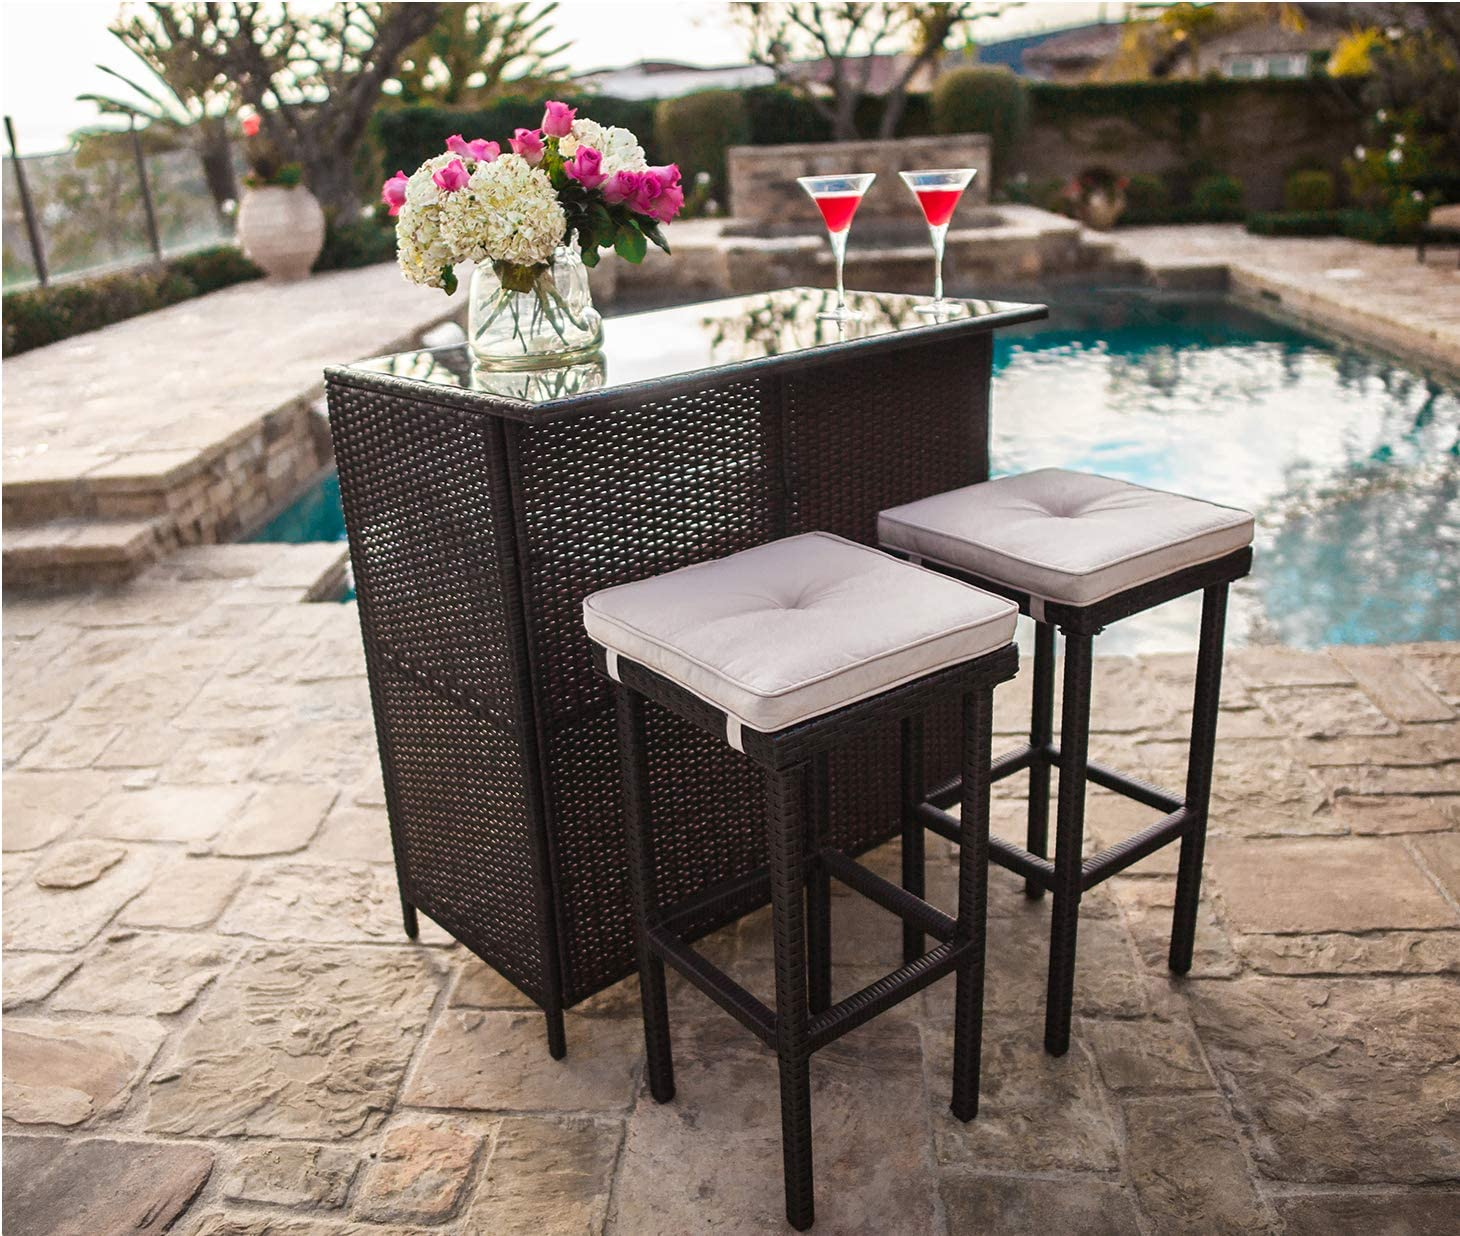 SUNCROWN Outdoor Bar Set 3-Piece Brown Wicker Patio Furniture – Glass Bar and Two Stools with Cushions for Patios, Backyards, Porches, Gardens or Poolside